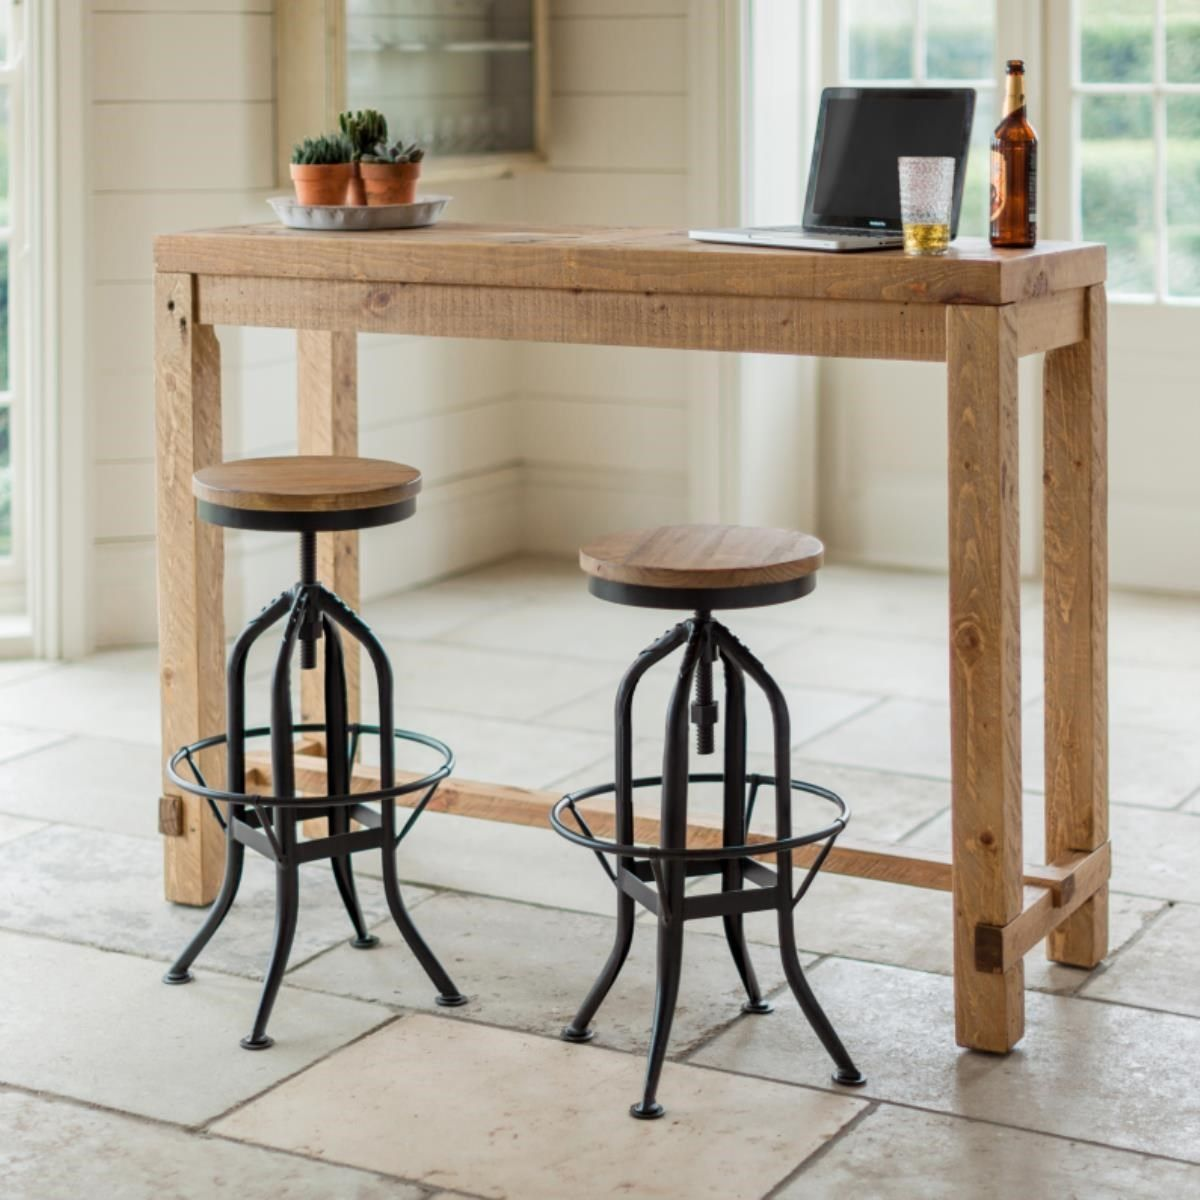 A Tall Bar Table Handcrafted From Reclaimed Pine In A